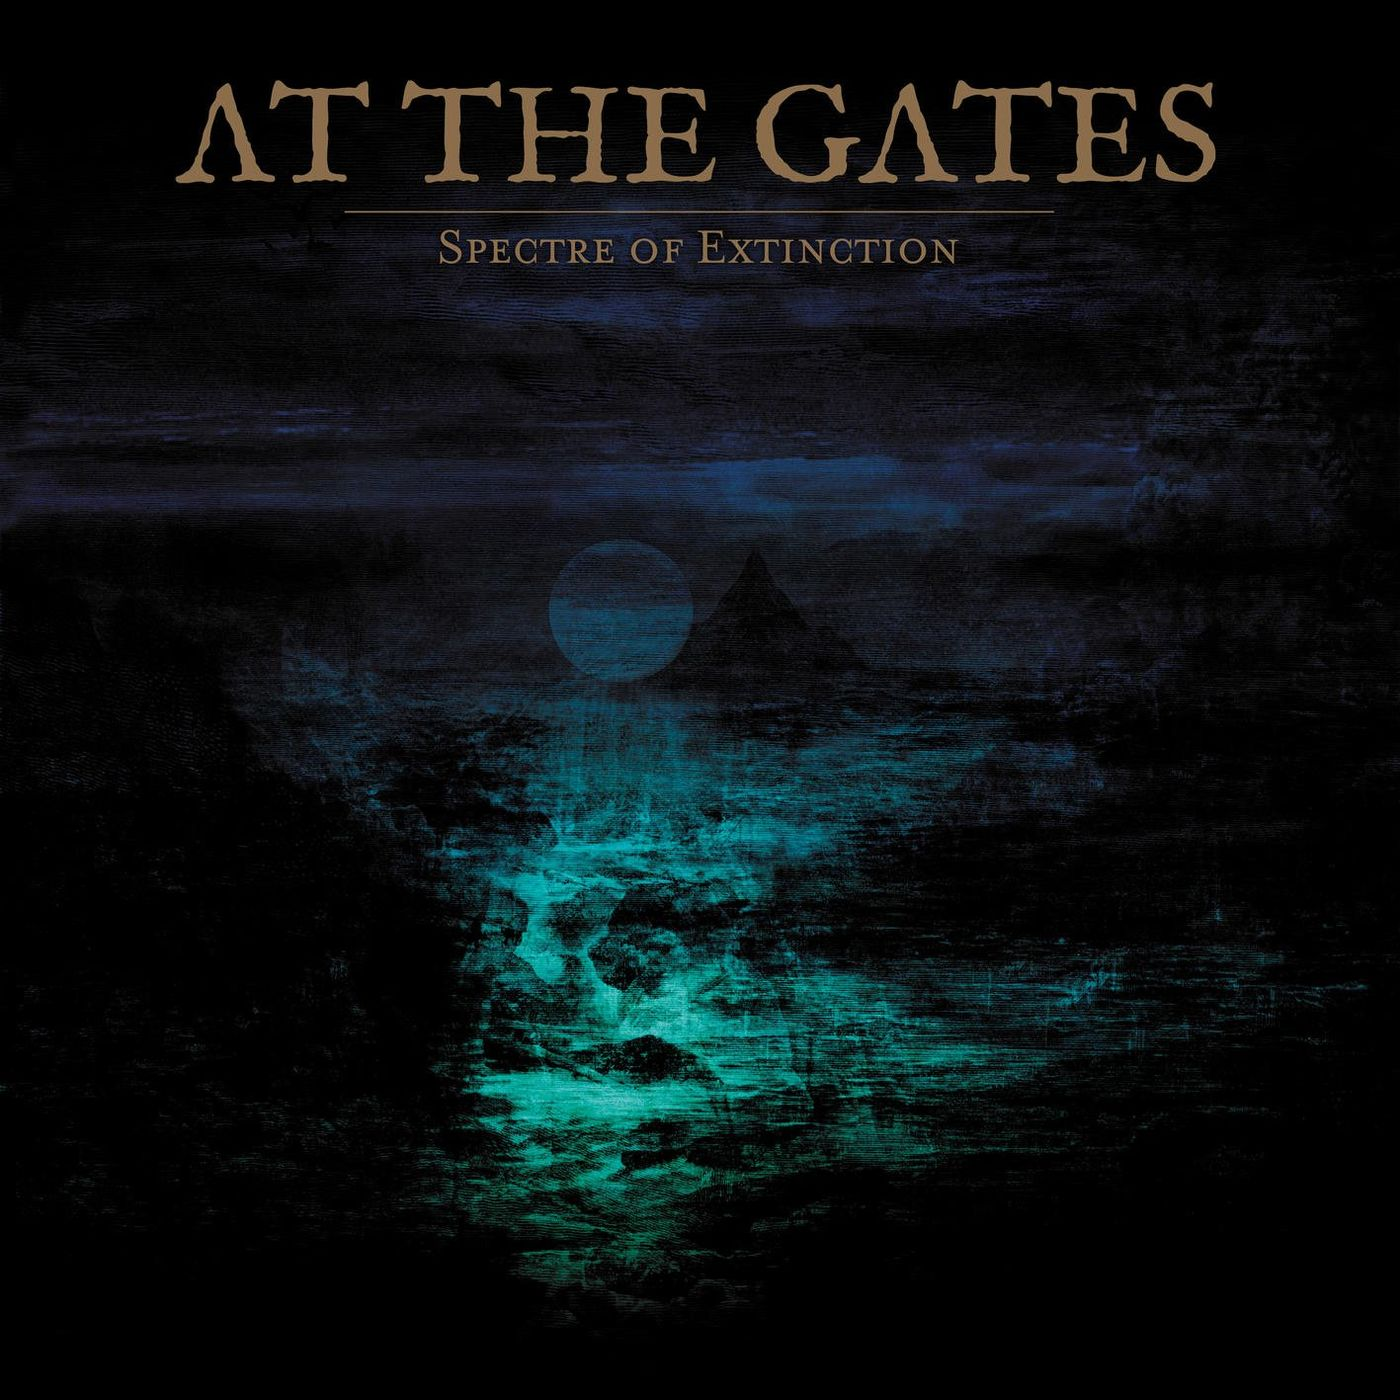 At the Gates - Spectre of Extinction [single] (2021)